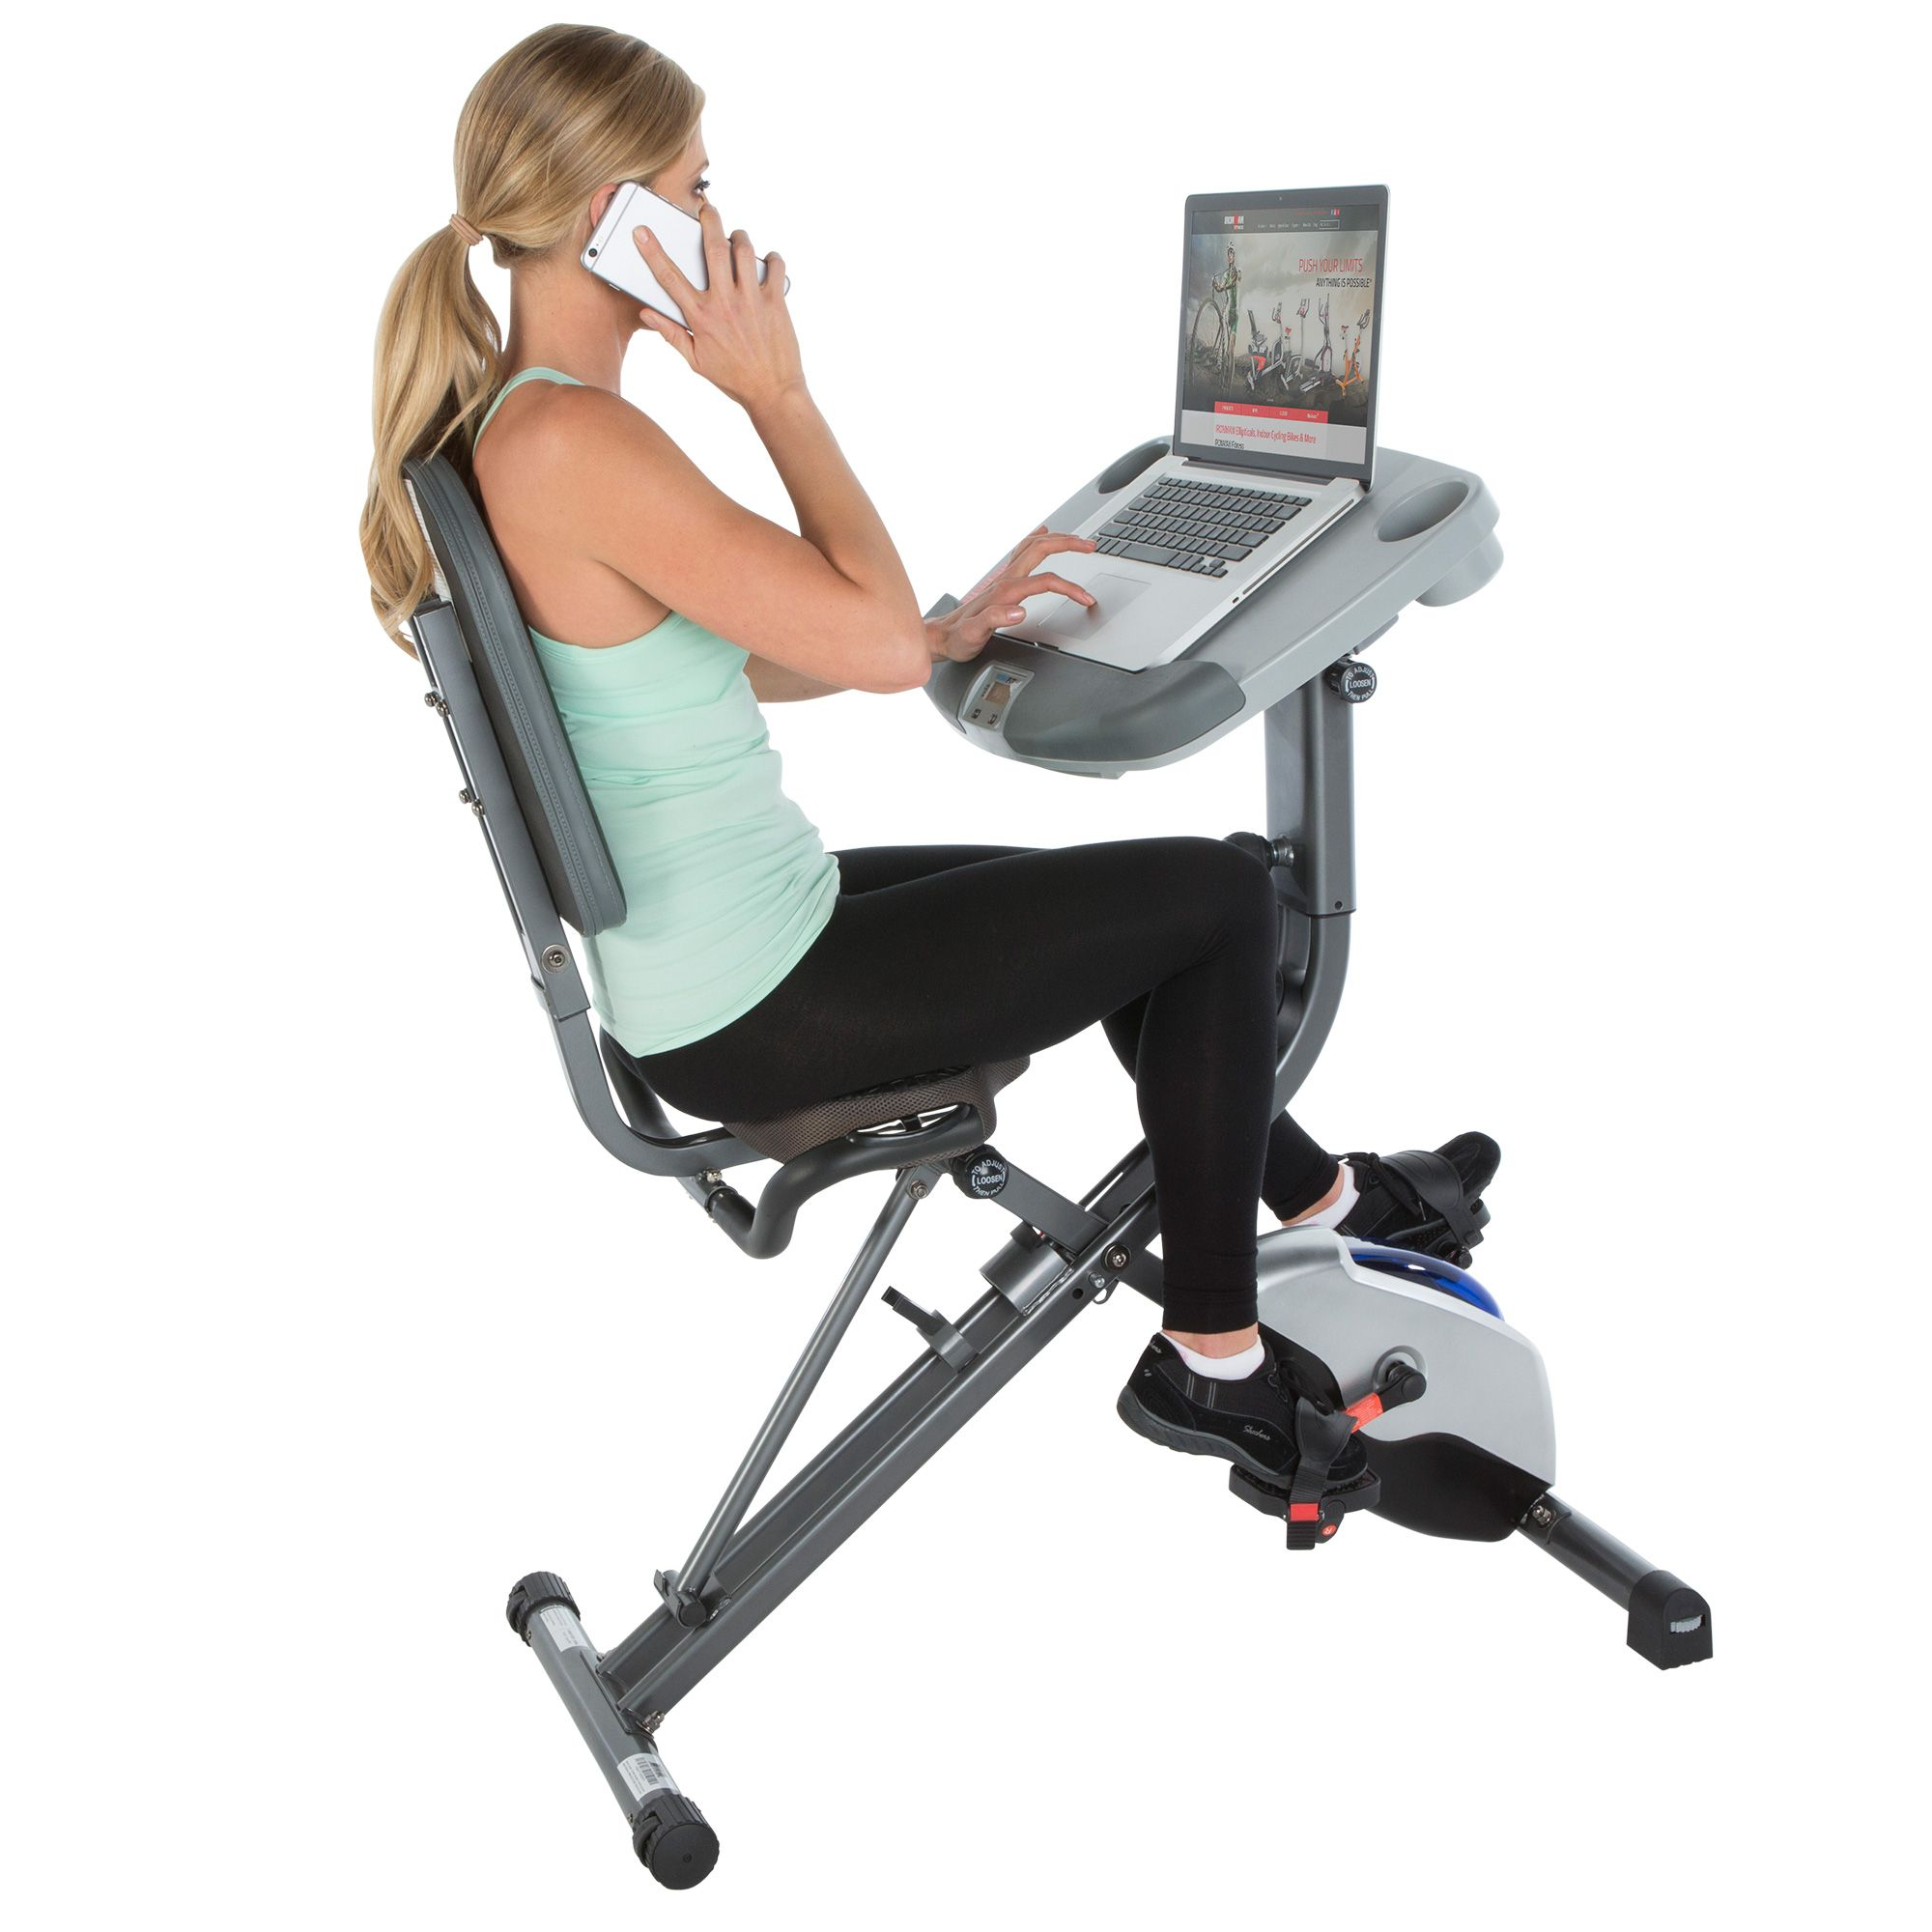 Exerpeutic Workfit 1000 Desk Station Folding Exercise Bike With